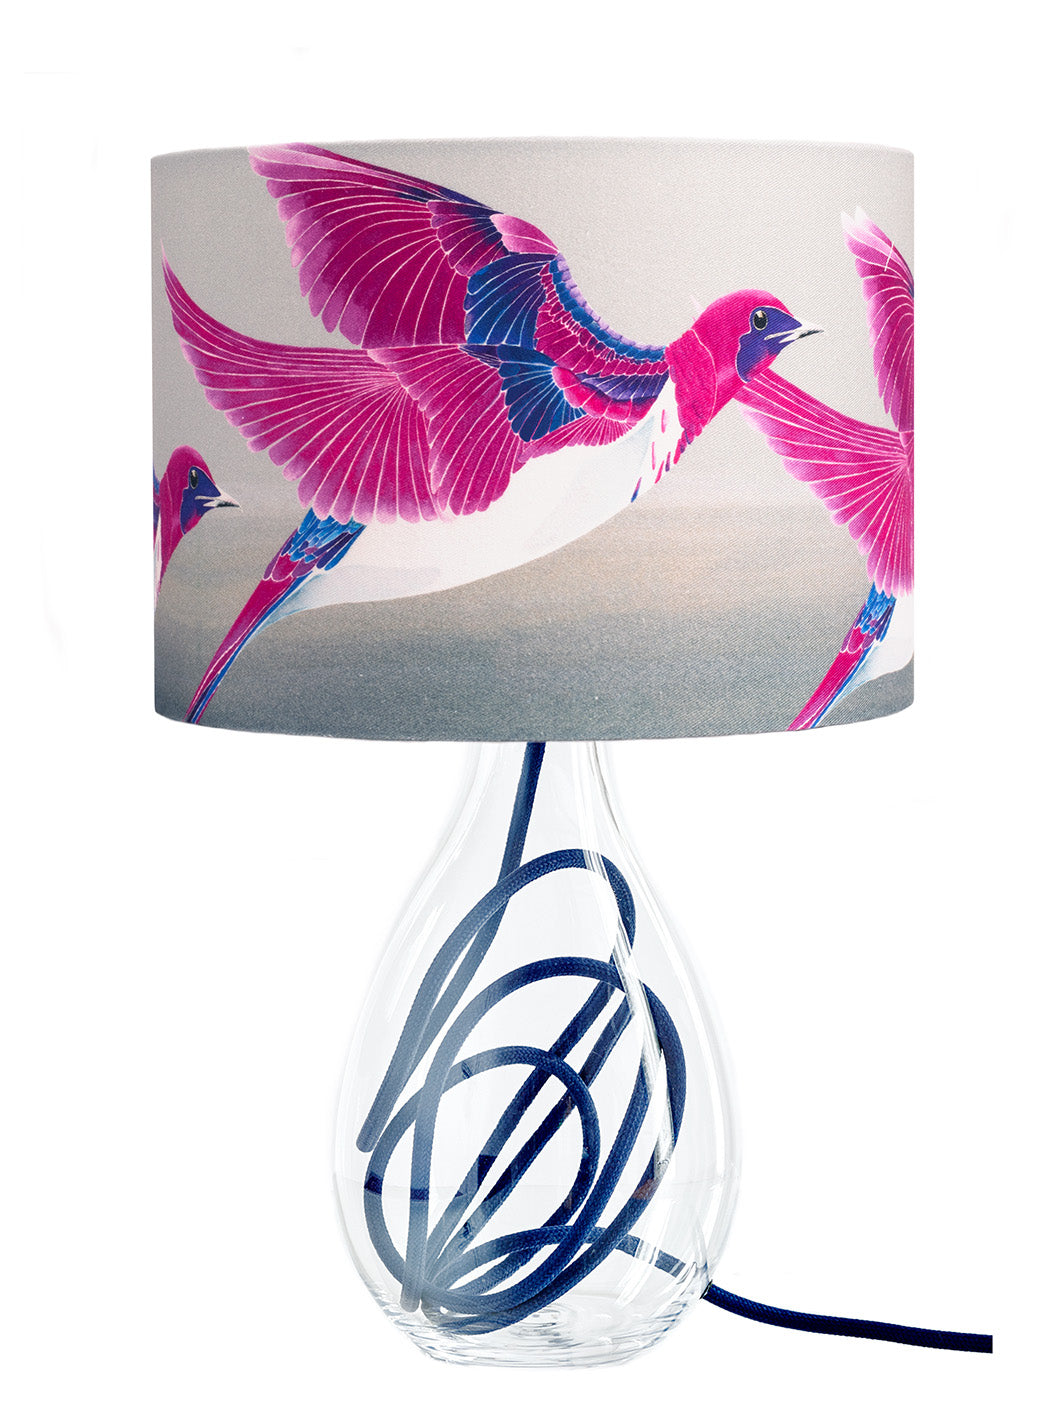 Starling lamp on indigo flex by Anna Jacobs